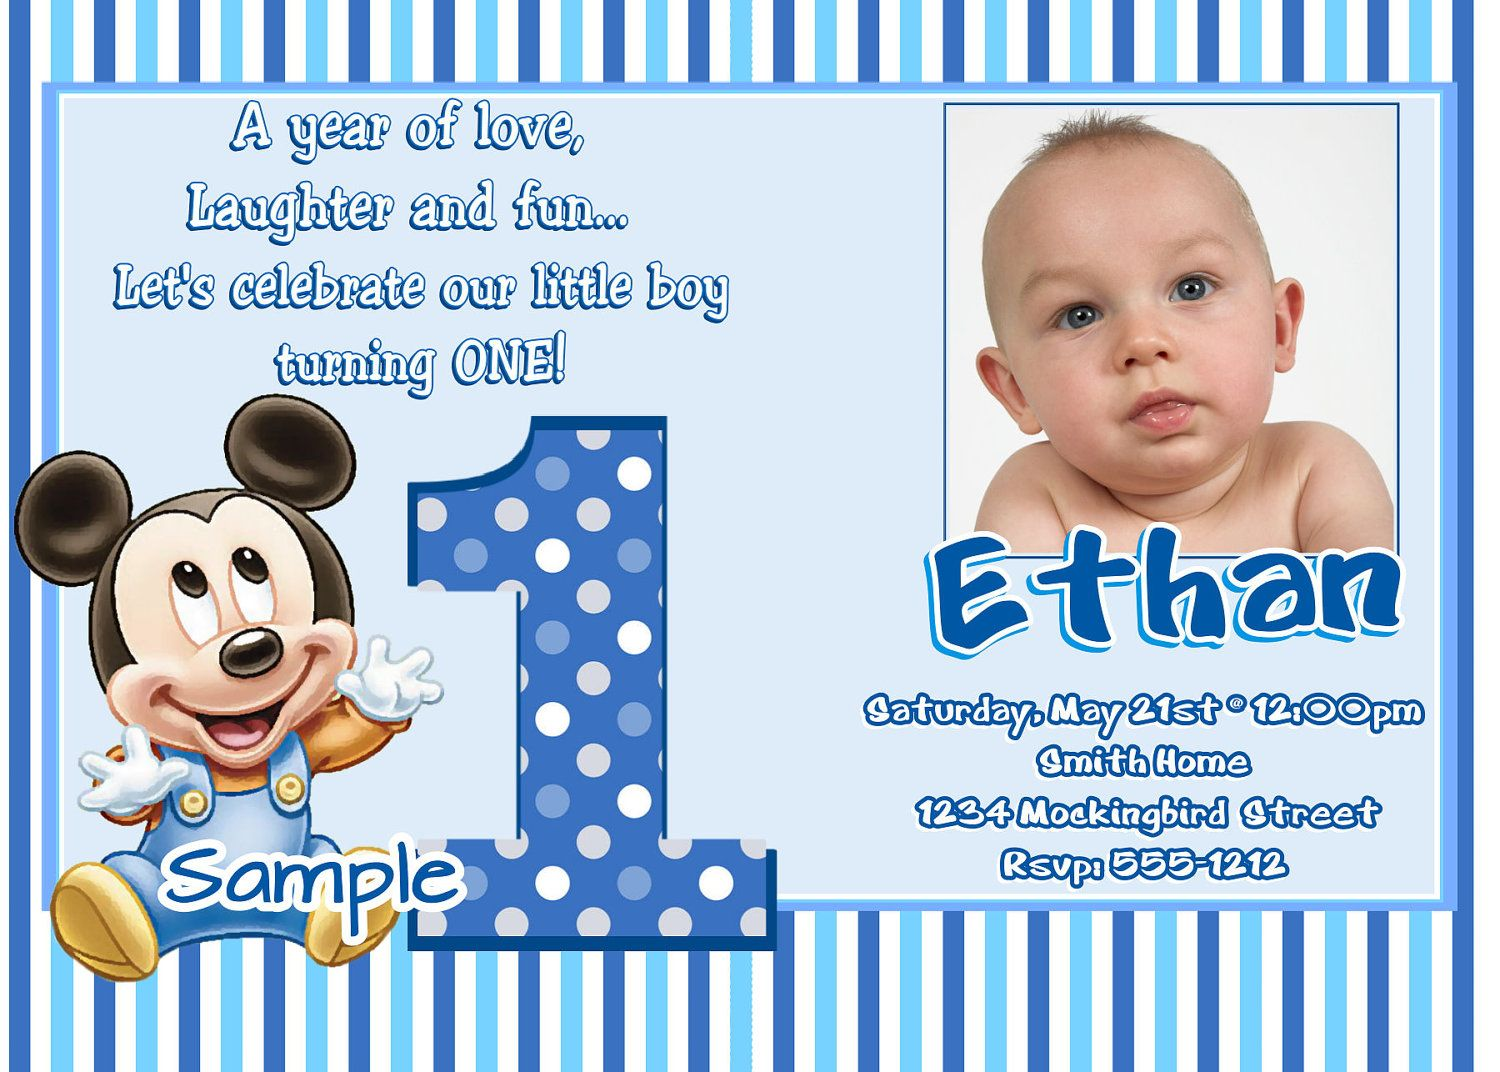 babys 1st birthday invitation ; Baby-1St-Birthday-Invitations-is-one-of-the-right-art-to-perfect-your-invitation-ideas-5